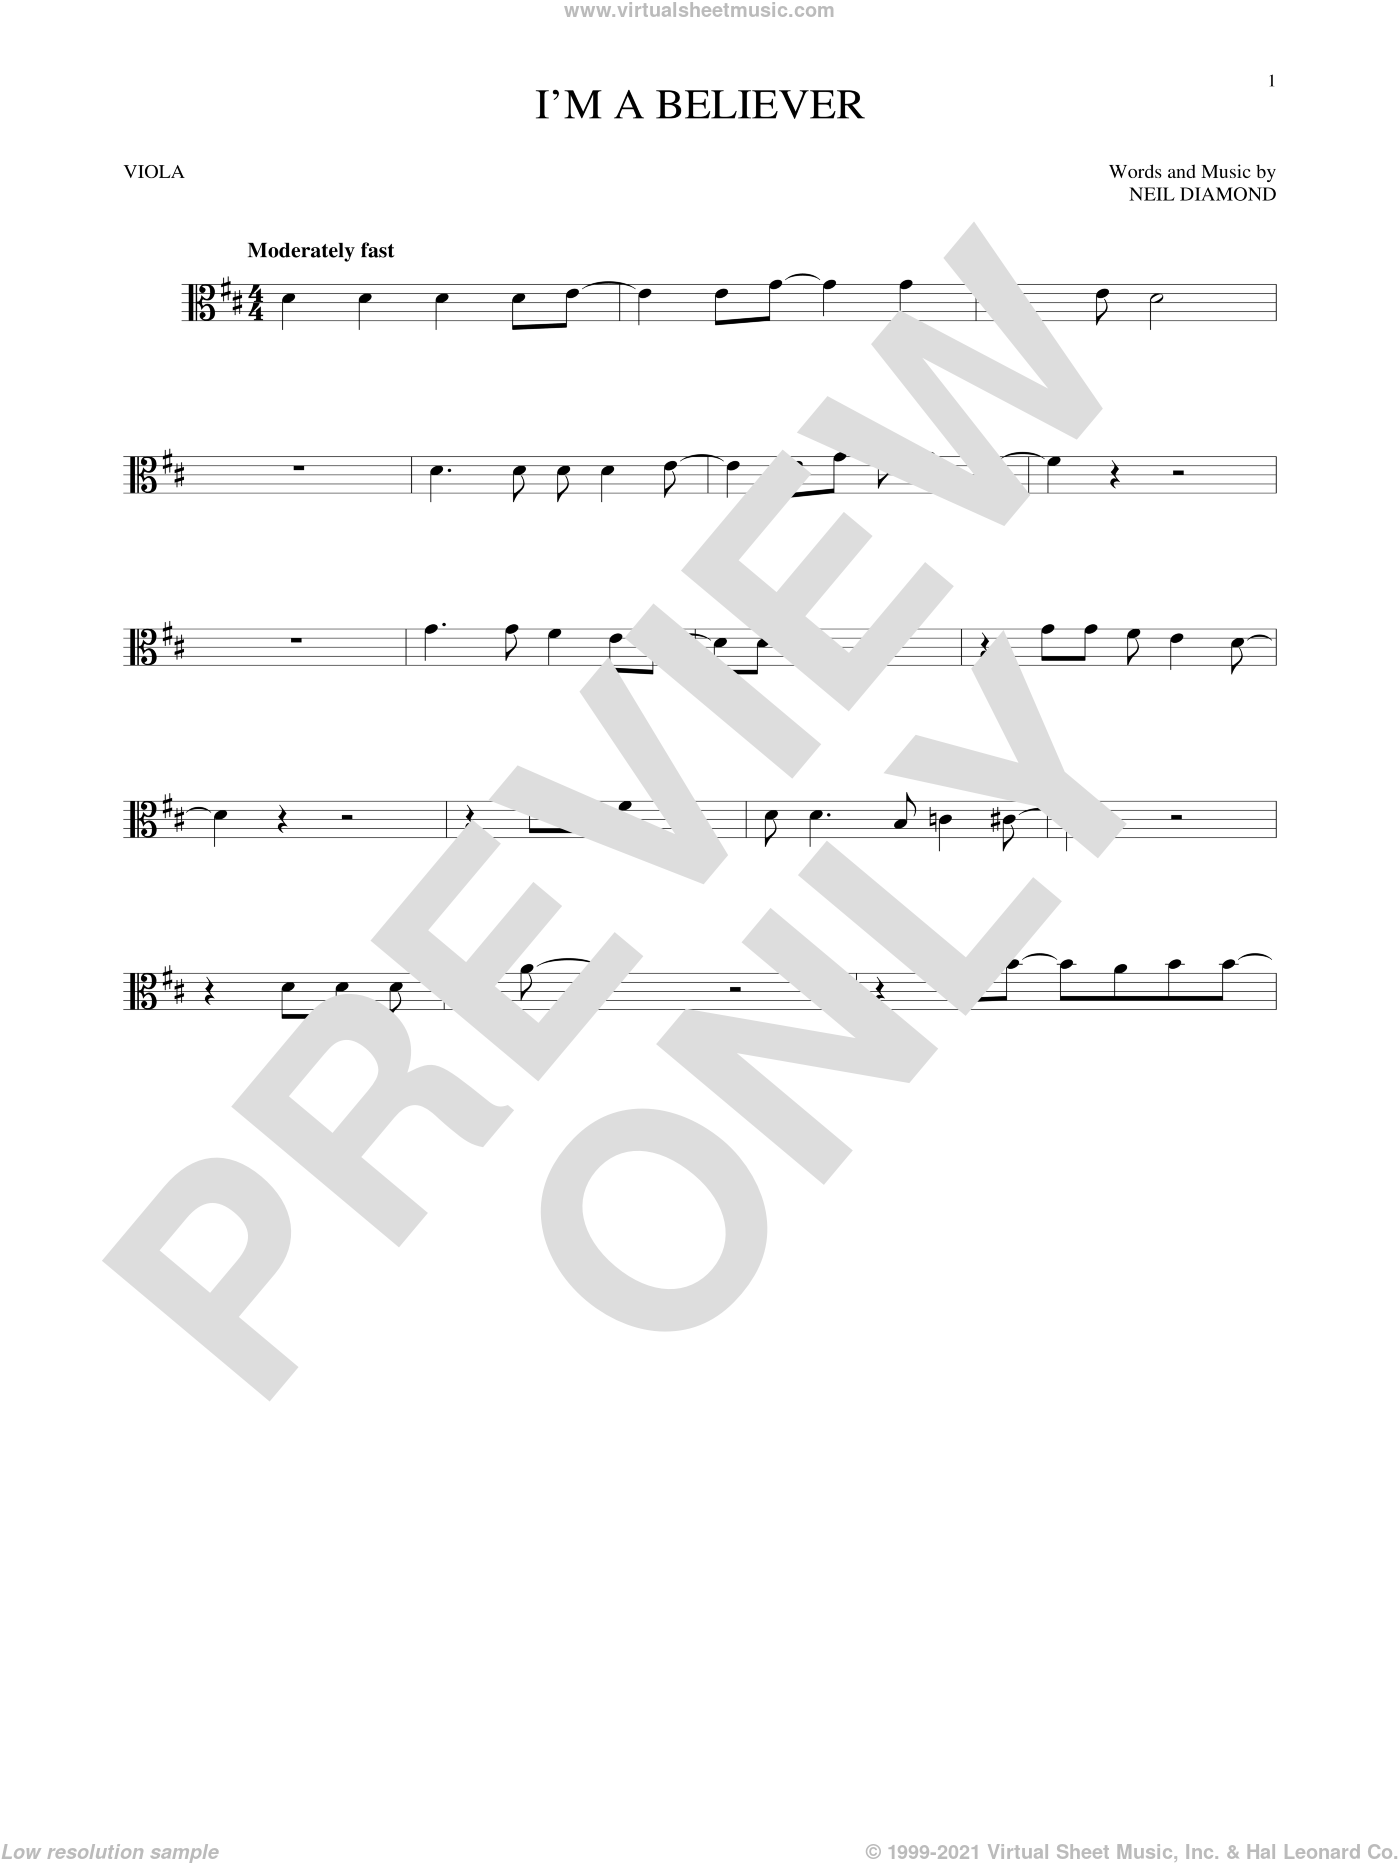 I'm A Believer sheet music for viola solo by Neil Diamond and The Monkees, intermediate skill level